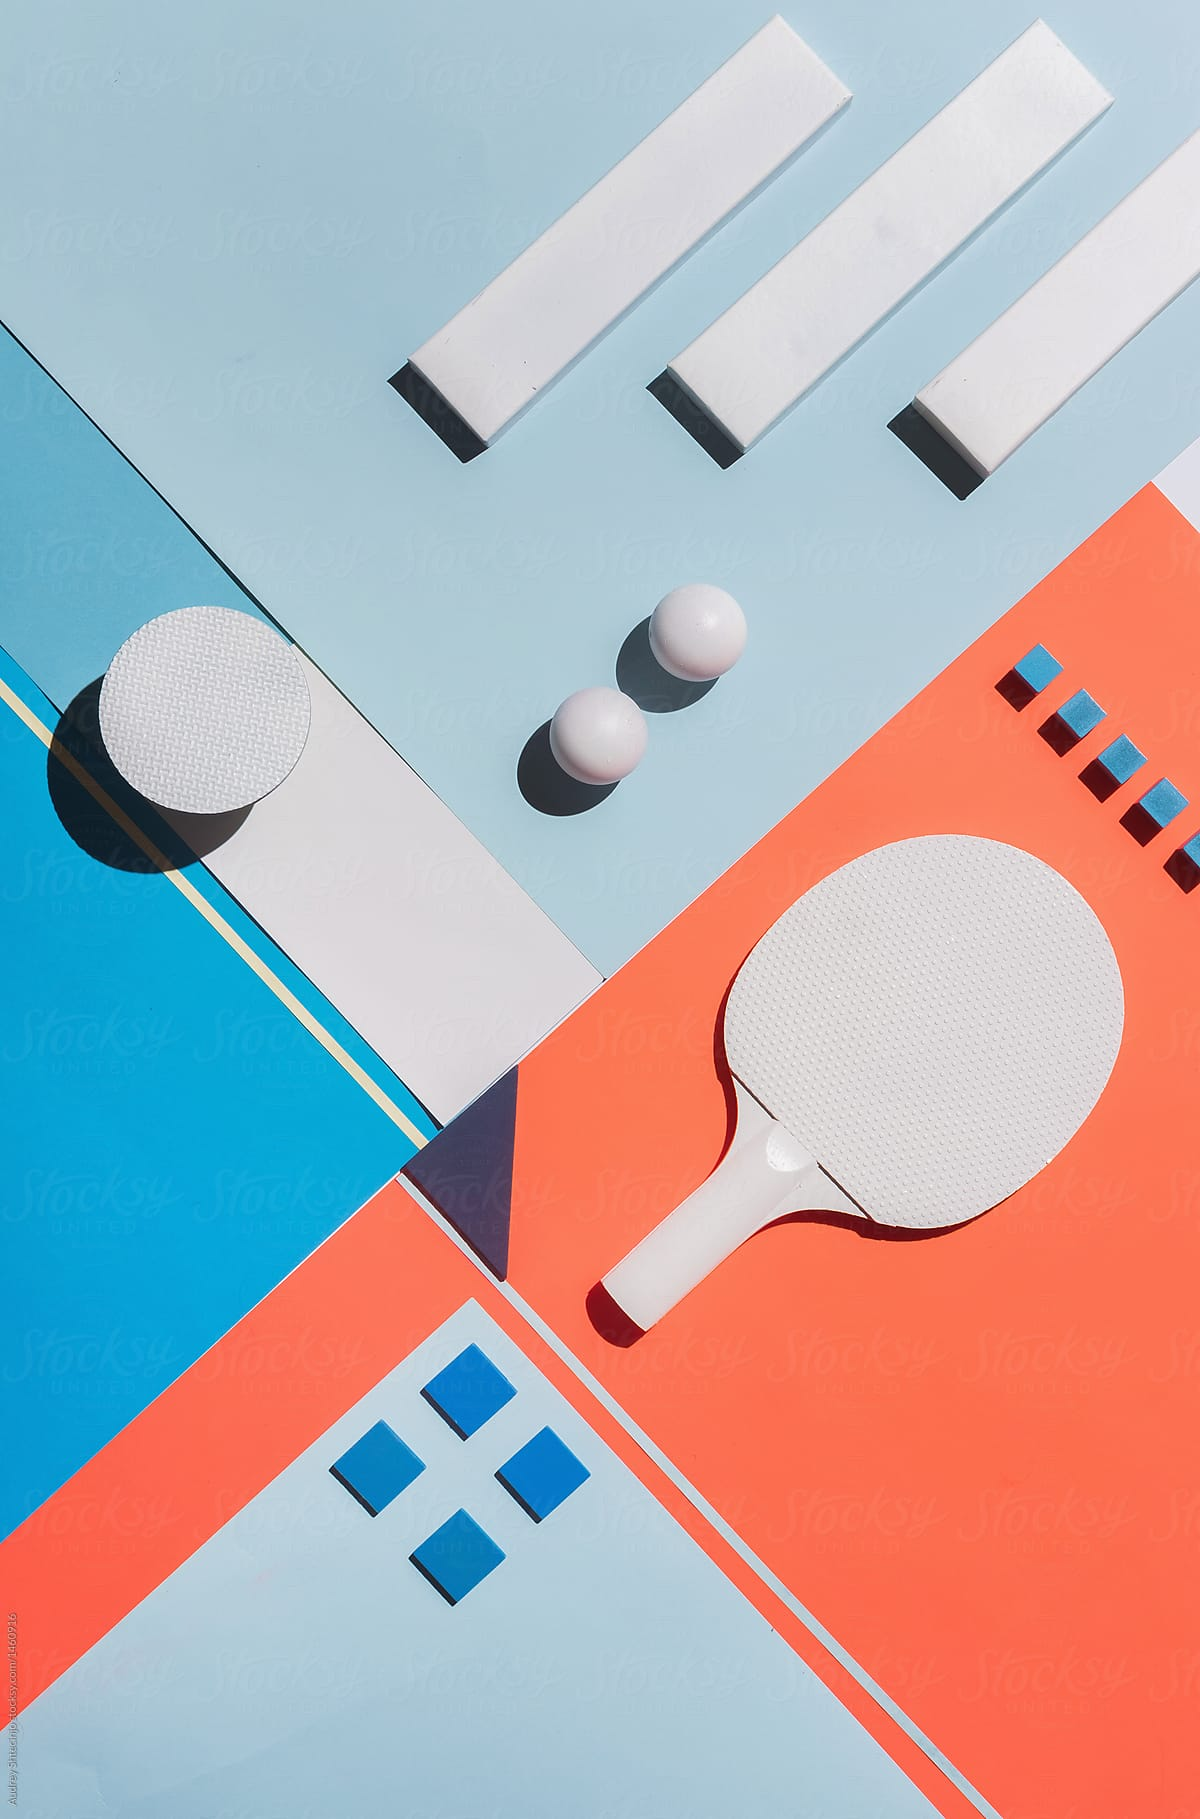 Abstract Conceptual Geometry Set Up/Composition. | Stocksy United